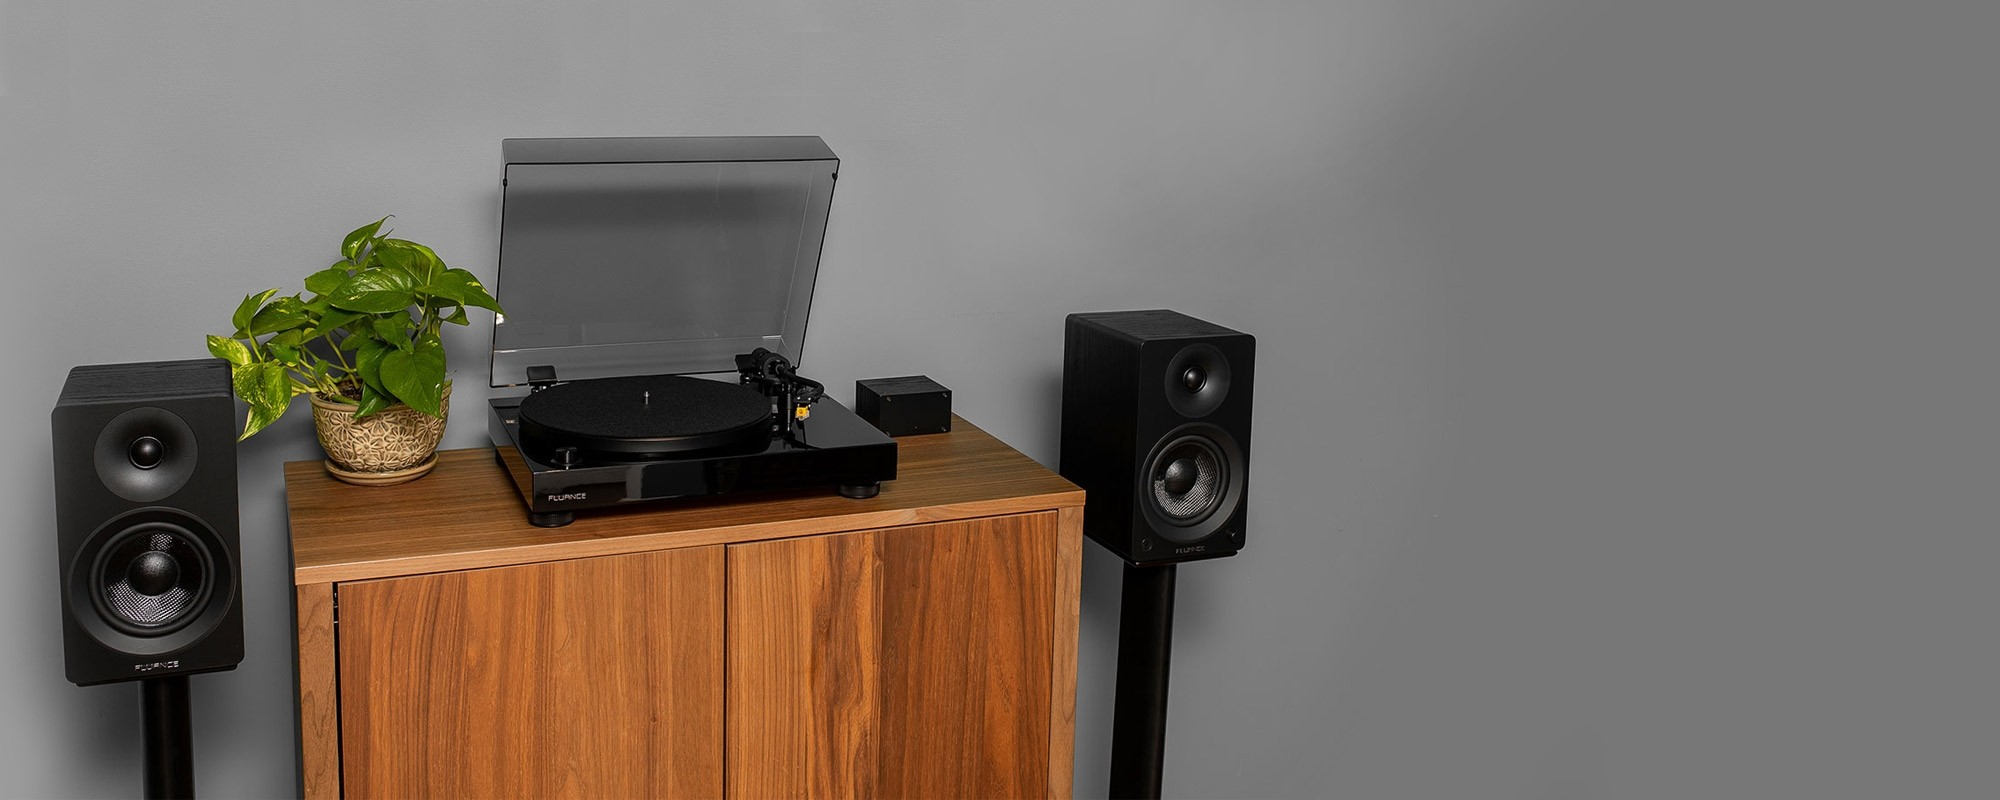 "Classic High Fidelity Vinyl Turntable with Ai40 5"" Powered Bookshelf Speakers - on cabinet with plant 2"